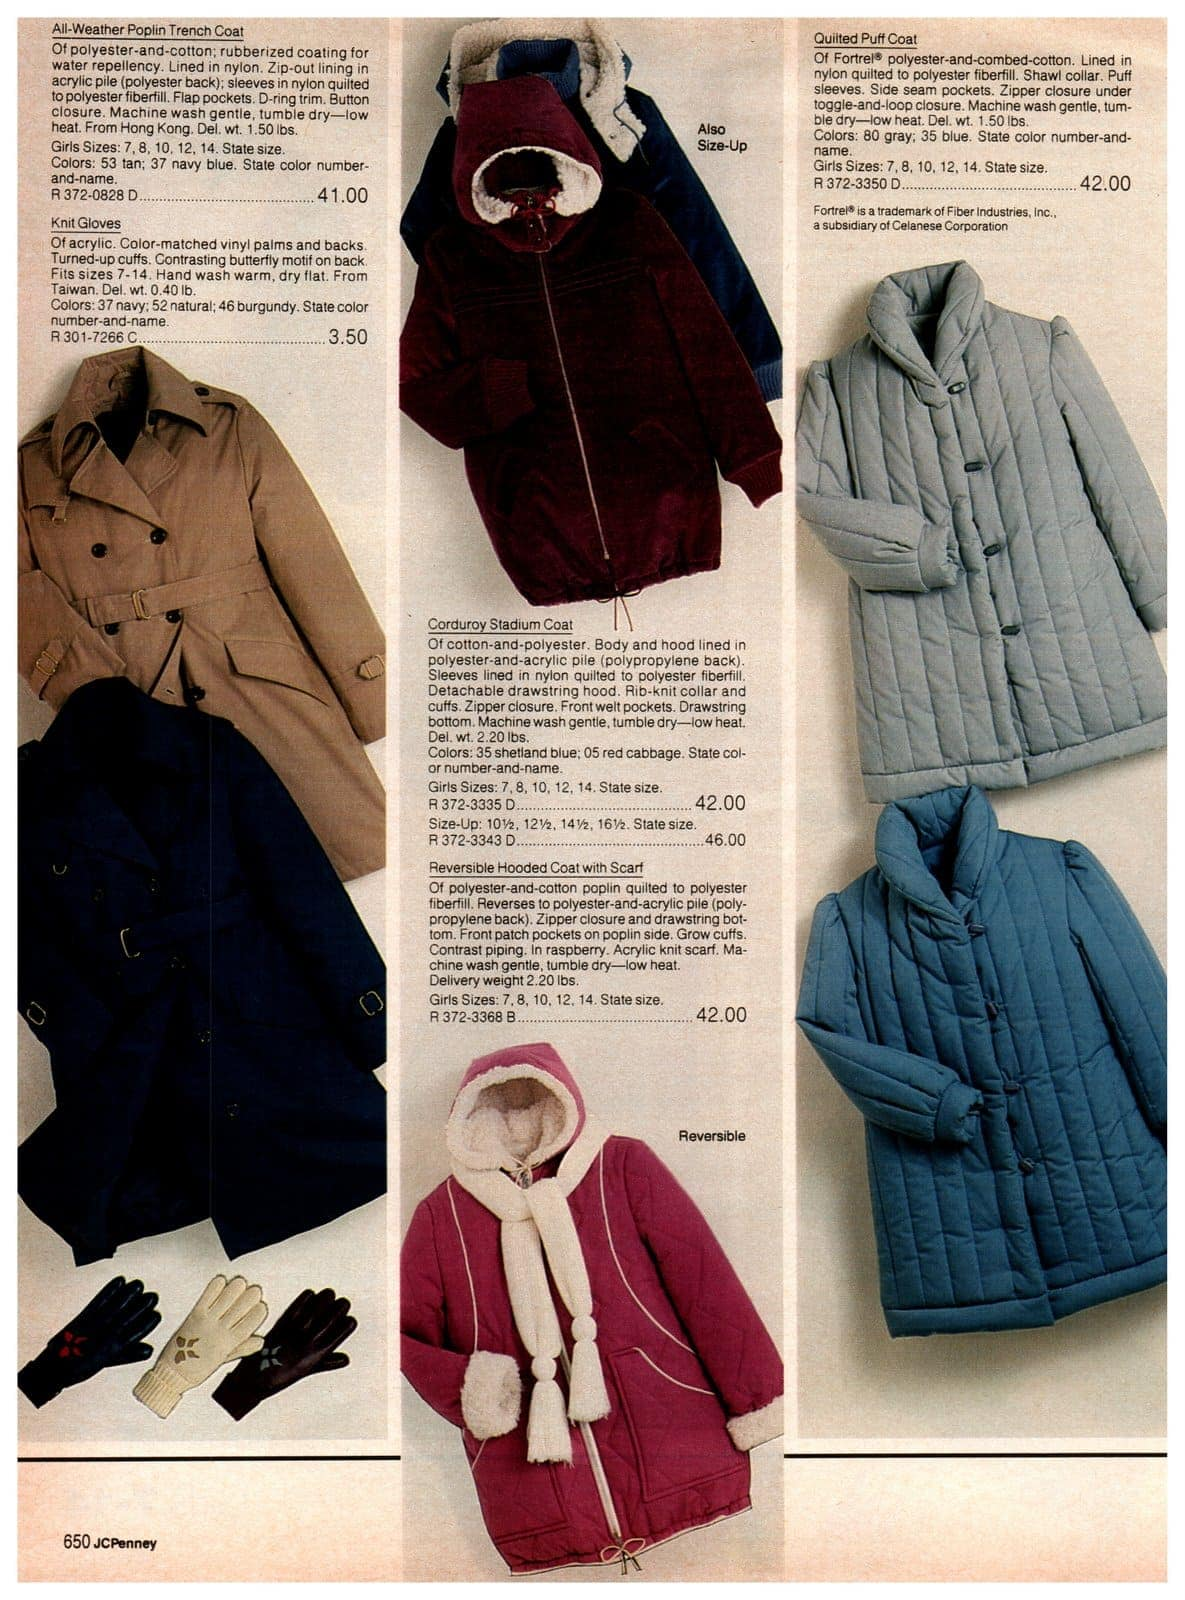 Trench coats, corduroy stadium coats, reversible hoodies and quilted puff coats with shawl collars